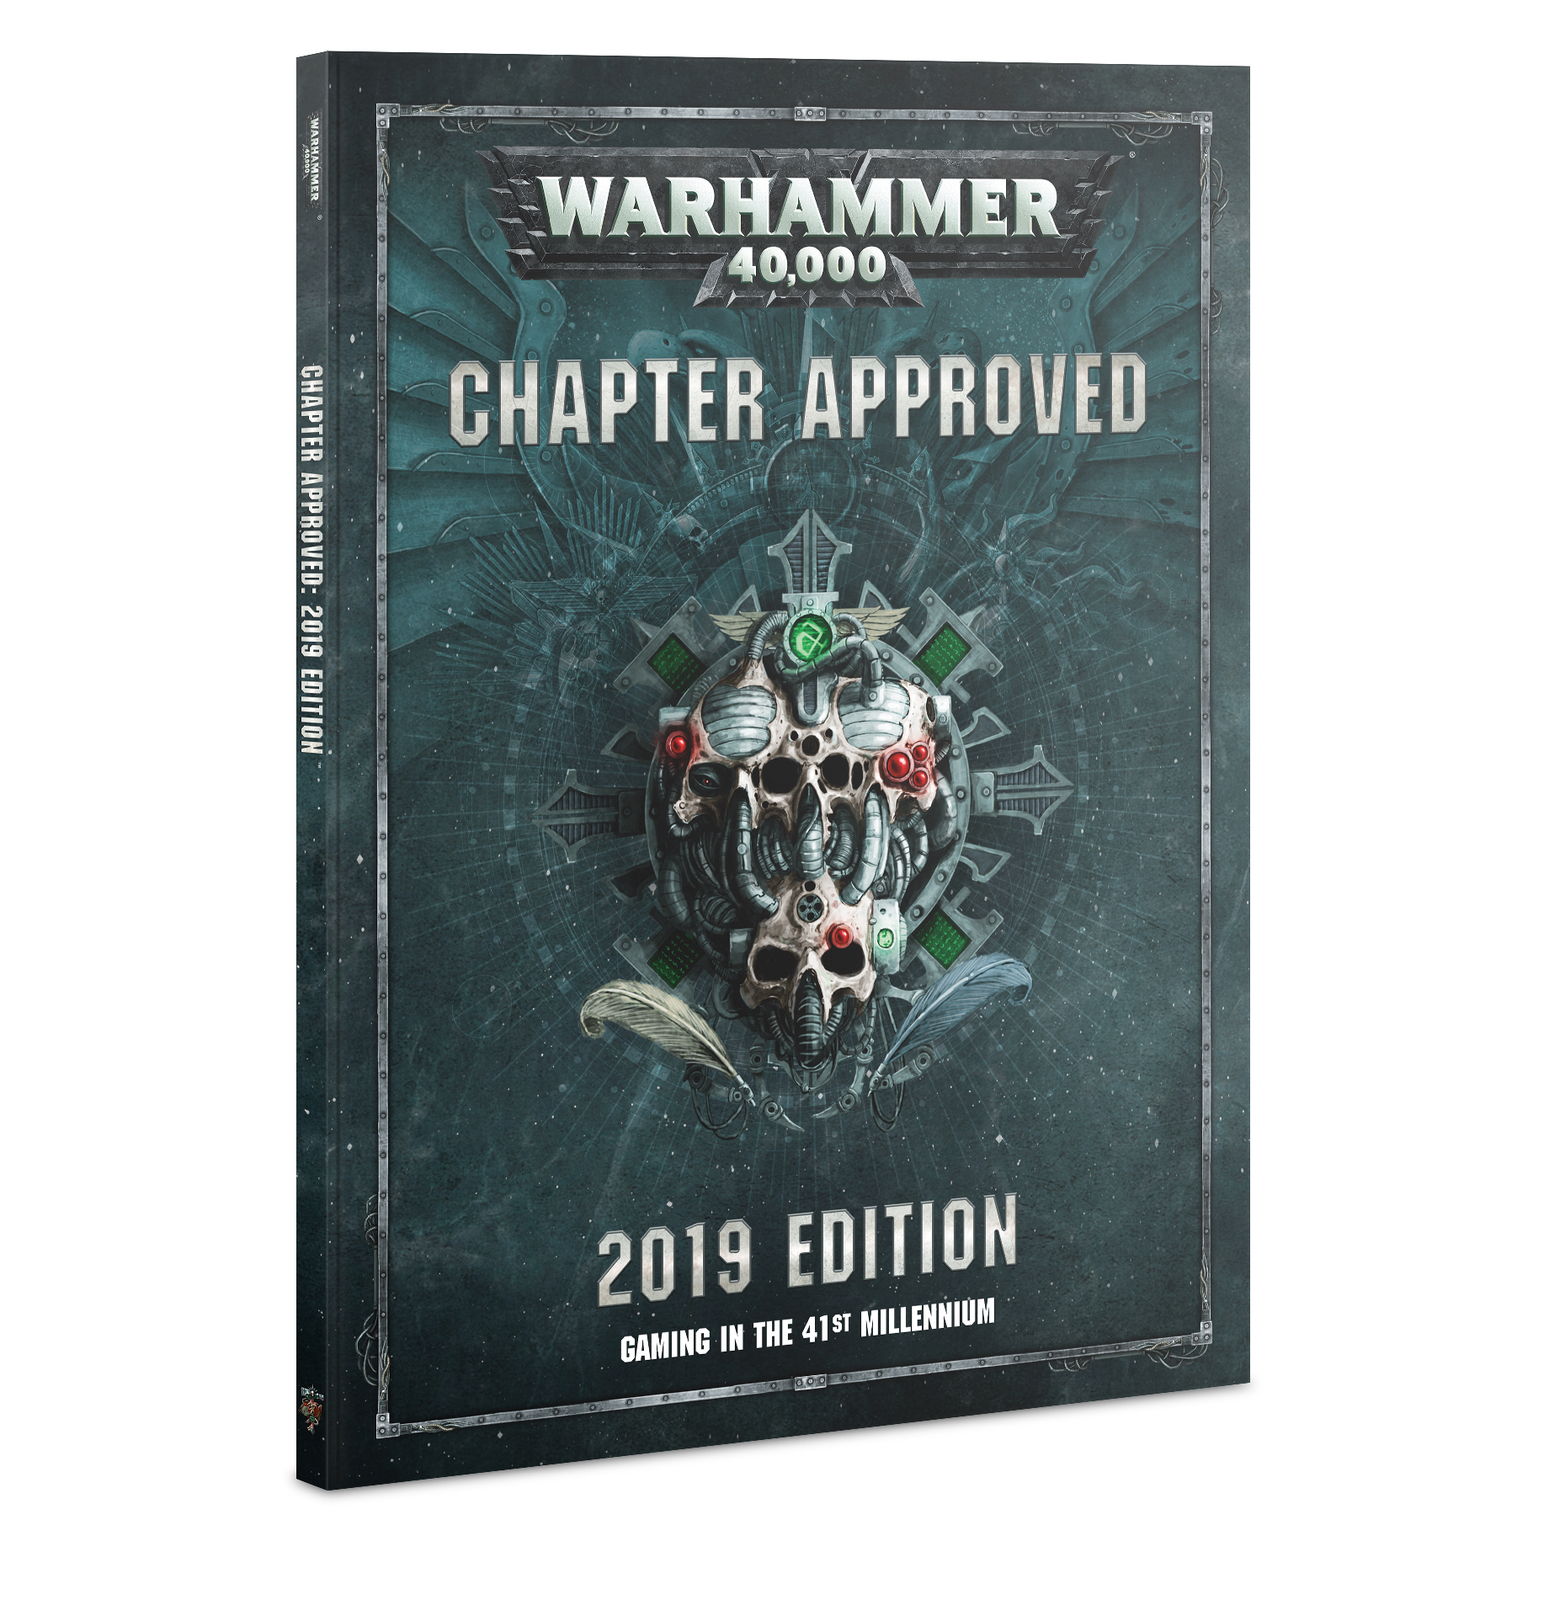 Warhammer 40,000: Chapter Approved 2019 image